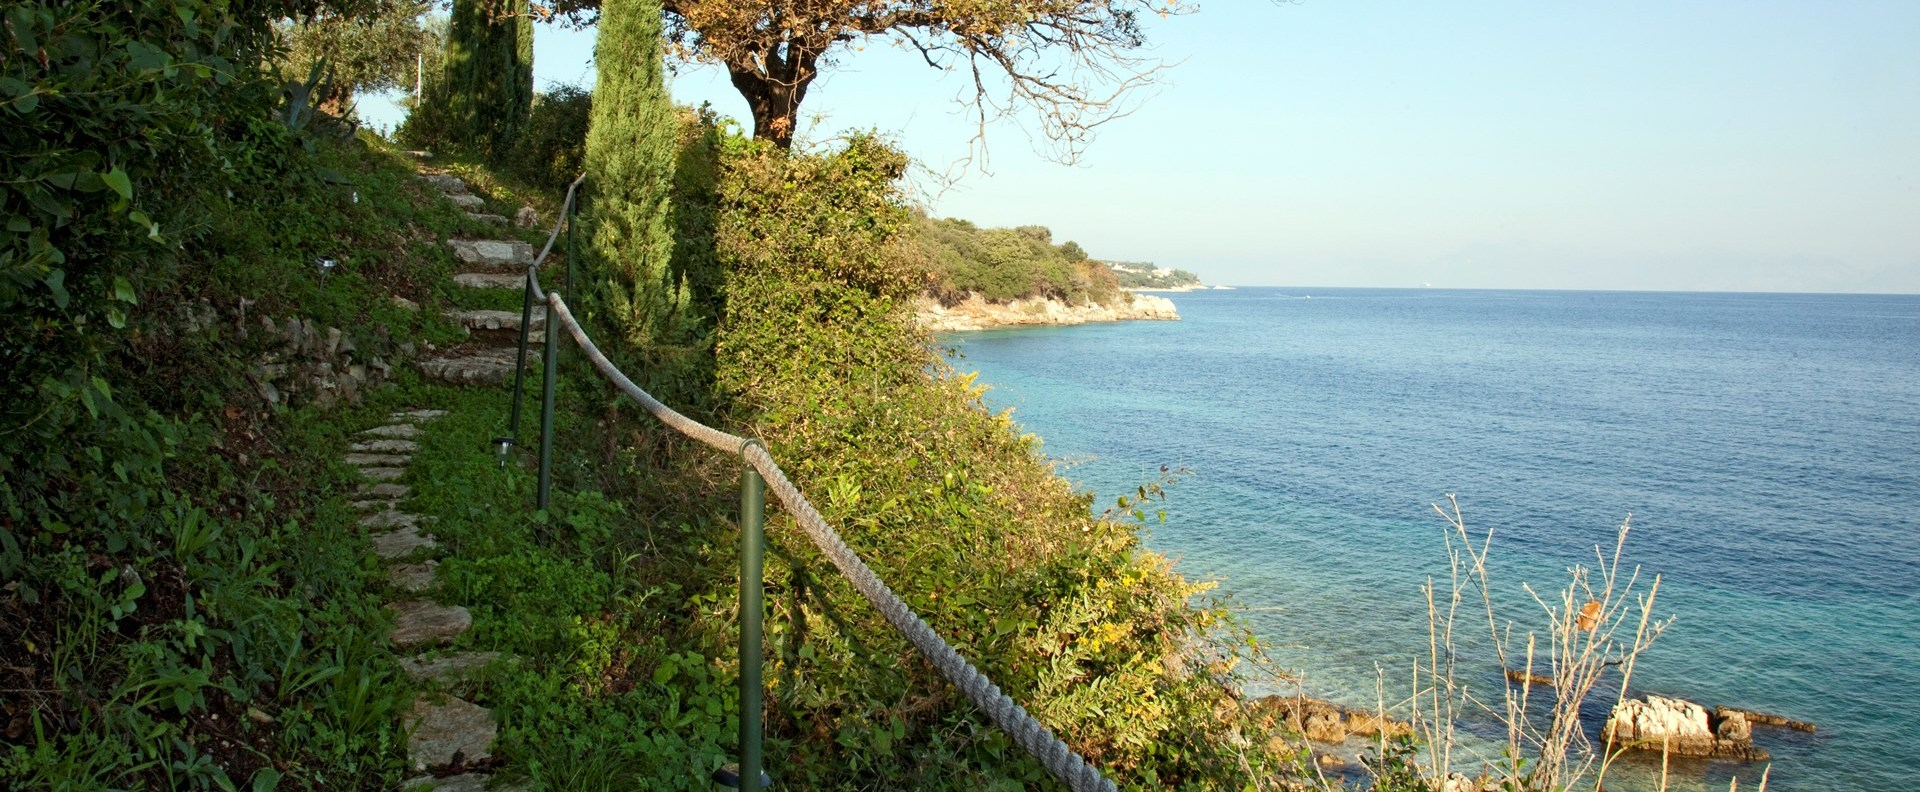 villa-amarea-path-to-beach